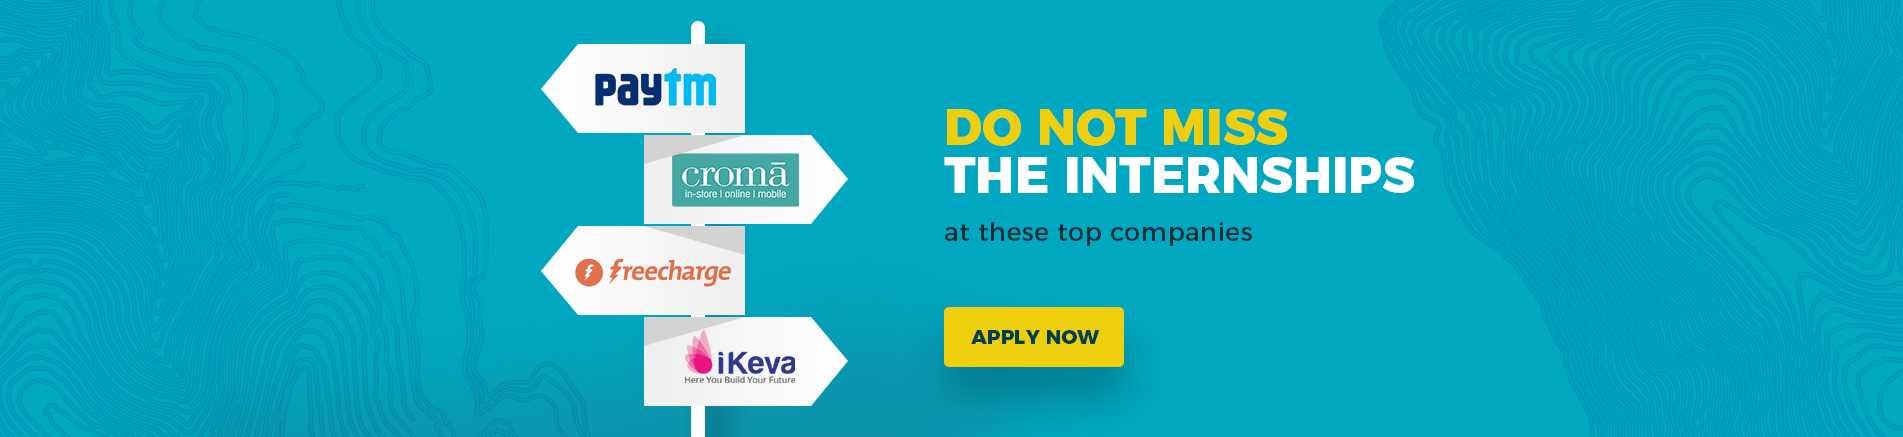 Do not miss internships at these top companies